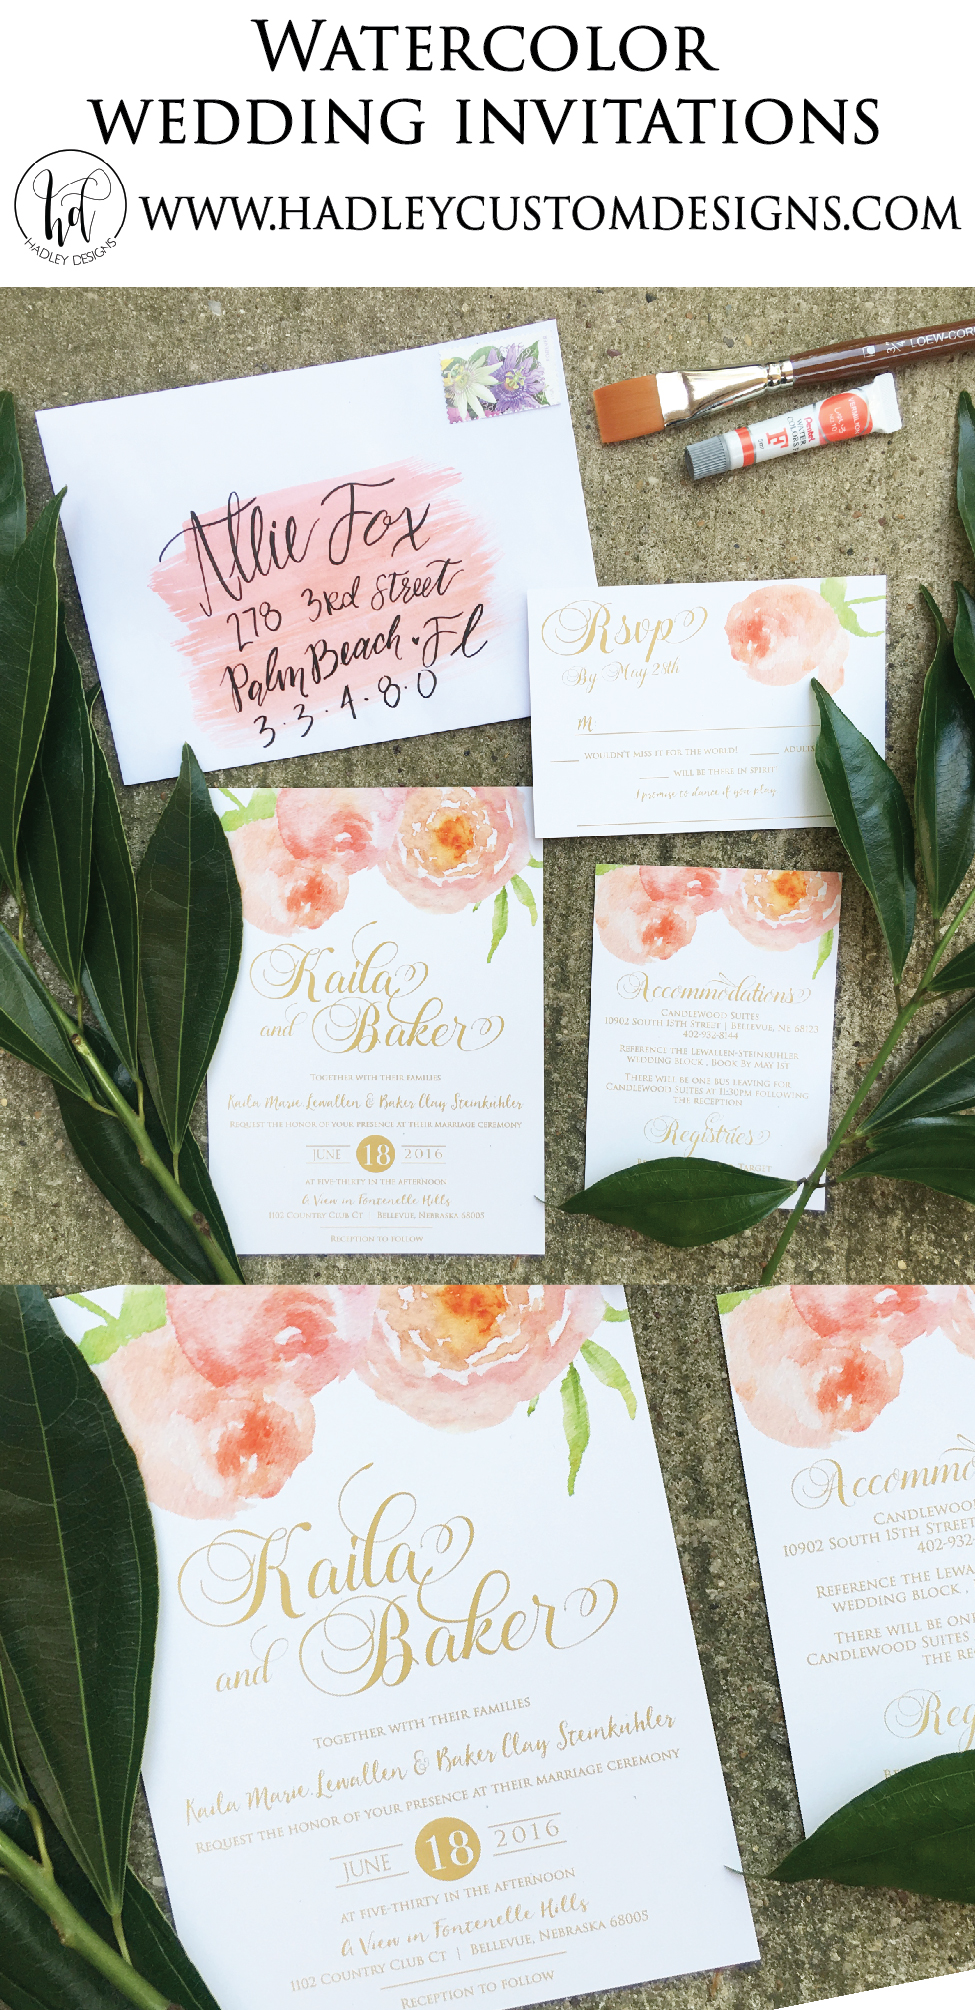 Elegant Wedding Invitations, Classic Wedding Invitations, Calligraphy Wedding Invitations, Formal Wedding Invitations, Traditional Wedding Invitations, Watercolor Wedding Invitations